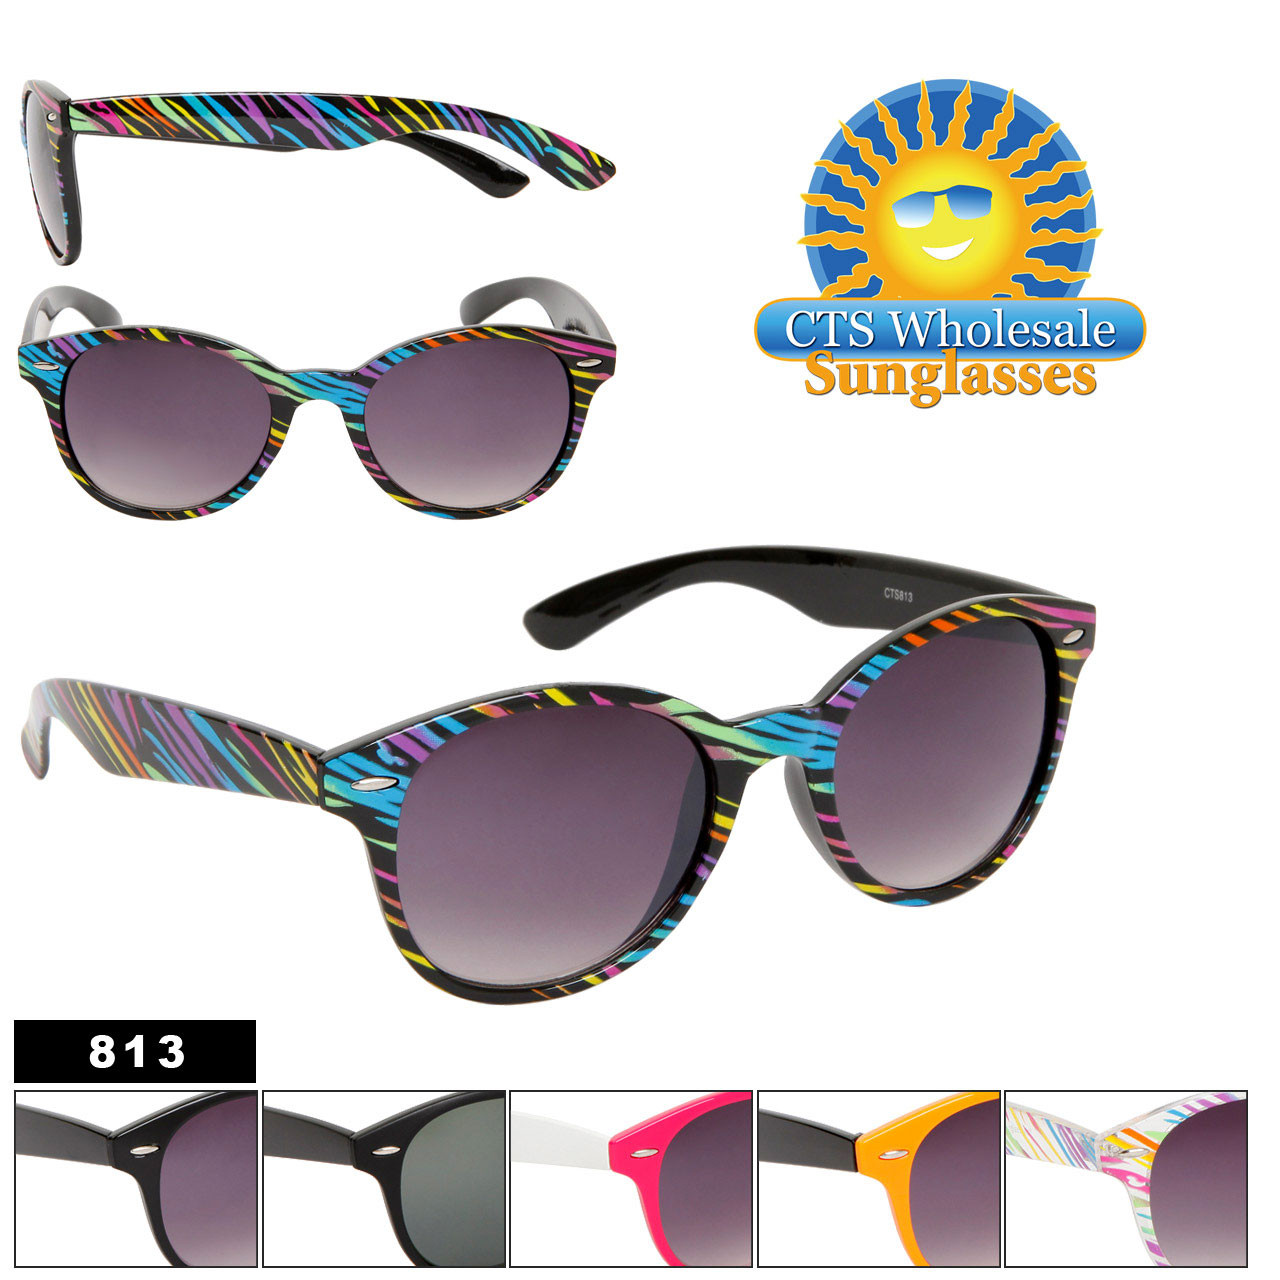 Wholesale Sunglasses 813